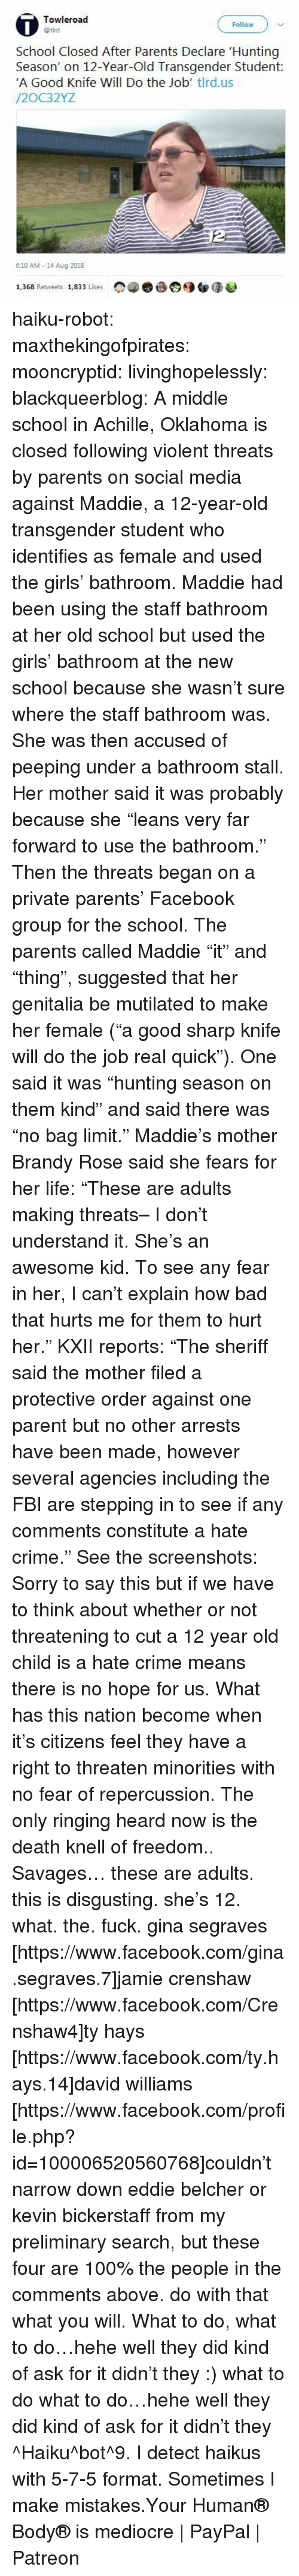 "Anaconda, Bad, and Crime: 0  Towleroad  @tird  Follow  School Closed After Parents Declare Hunting  Season' on 12-Year-Old Transgender Student  'A Good Knife Will Do the Job' tlrd.us  /2OC32YZ  6:10 AM 14 Aug 2018  ▼  合颀钮谈遮  1.368 Retweets 1,833 Likes haiku-robot:  maxthekingofpirates:  mooncryptid:  livinghopelessly:  blackqueerblog:  A middle school in Achille, Oklahoma is closed following violent threats by parents on social media against Maddie, a 12-year-old transgender student who identifies as female and used the girls' bathroom. Maddie had been using the staff bathroom at her old school but used the girls' bathroom at the new school because she wasn't sure where the staff bathroom was. She was then accused of peeping under a bathroom stall. Her mother said it was probably because she ""leans very far forward to use the bathroom."" Then the threats began on a private parents' Facebook group for the school. The parents called Maddie ""it"" and ""thing"", suggested that her genitalia be mutilated to make her female (""a good sharp knife will do the job real quick""). One said it was ""hunting season on them kind"" and said there was ""no bag limit."" Maddie's mother Brandy Rose said she fears for her life: ""These are adults making threats– I don't understand it. She's an awesome kid. To see any fear in her, I can't explain how bad that hurts me for them to hurt her."" KXII reports: ""The sheriff said the mother filed a protective order against one parent but no other arrests have been made, however several agencies including the FBI are stepping in to see if any comments constitute a hate crime."" See the screenshots: Sorry to say this but if we have to think about whether or not threatening to cut a 12 year old child is a hate crime means there is no hope for us. What has this nation become when it's citizens feel they have a right to threaten minorities with no fear of repercussion. The only ringing heard now is the death knell of freedom..  Savages…   these are adults. this is disgusting. she's 12. what. the. fuck.  gina segraves [https://www.facebook.com/gina.segraves.7]jamie crenshaw [https://www.facebook.com/Crenshaw4]ty hays [https://www.facebook.com/ty.hays.14]david williams [https://www.facebook.com/profile.php?id=100006520560768]couldn't narrow down eddie belcher or kevin bickerstaff from my preliminary search, but these four are 100% the people in the comments above. do with that what you will.   What to do, what to do…hehe well they did kind of ask for it didn't they :)  what to do what to do…hehe well they did kind of ask for it didn't they ^Haiku^bot^9. I detect haikus with 5-7-5 format. Sometimes I make mistakes.Your Human® Body® is mediocre 